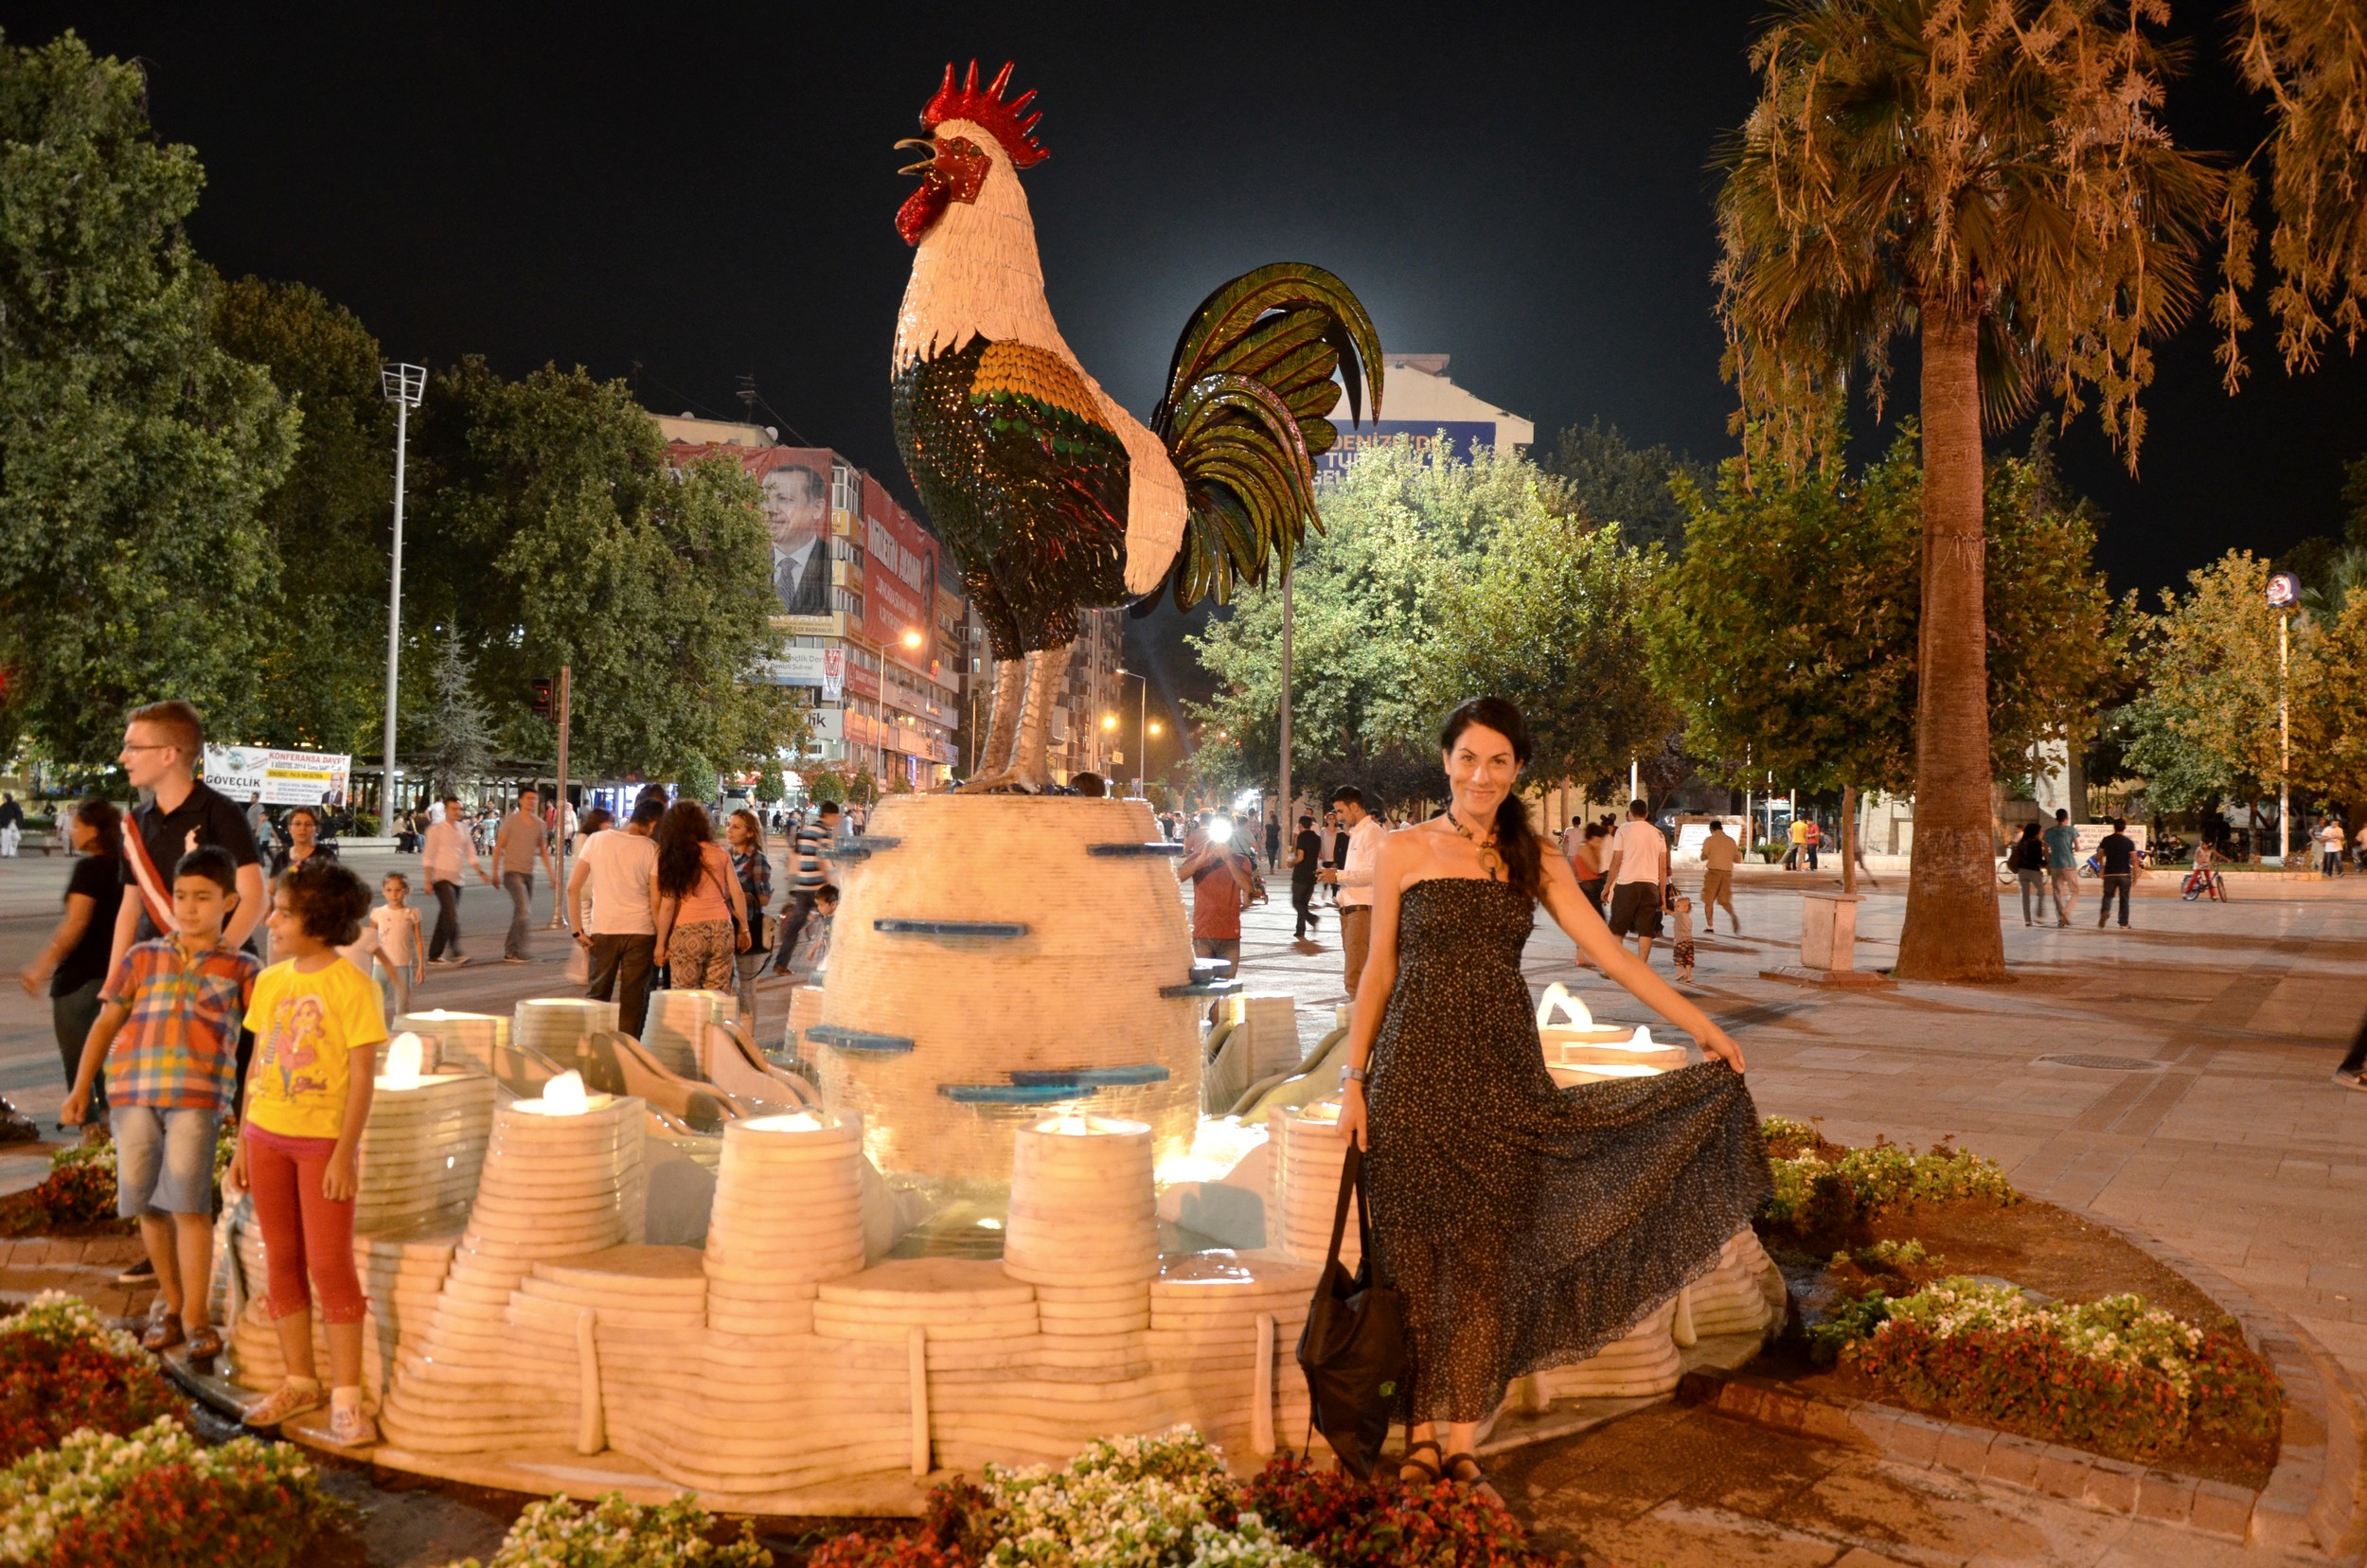 Denizli, shot with the rooster